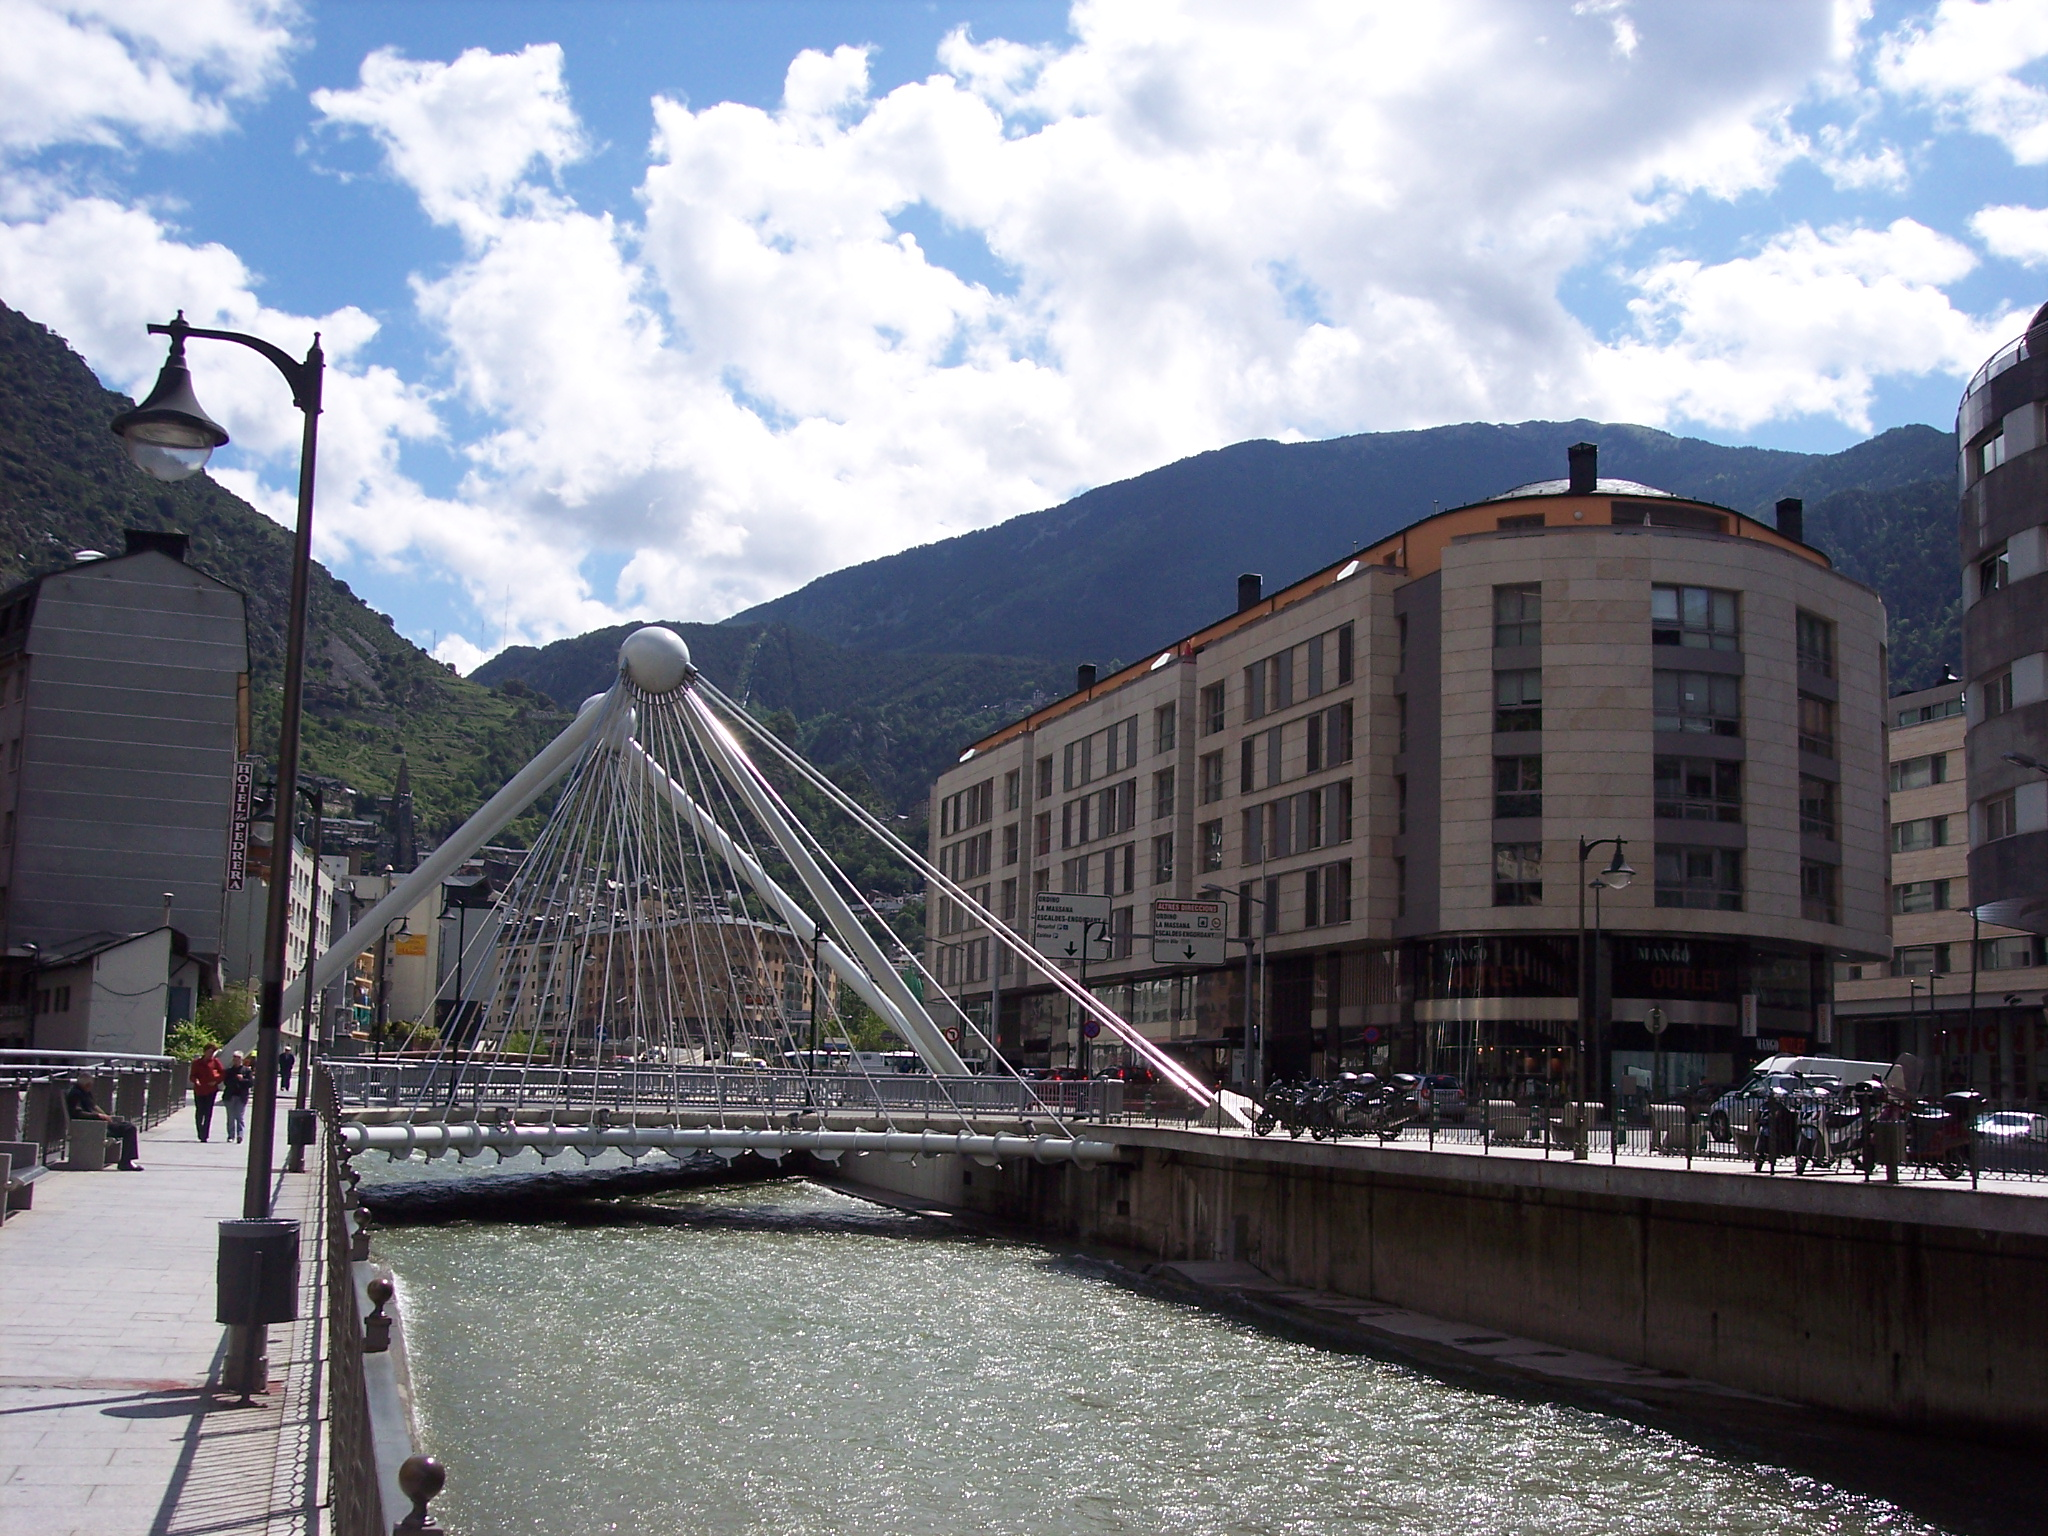 Andorra La Vella Andorra  City pictures : Description Bridge in Andorra la Vella, Andorra